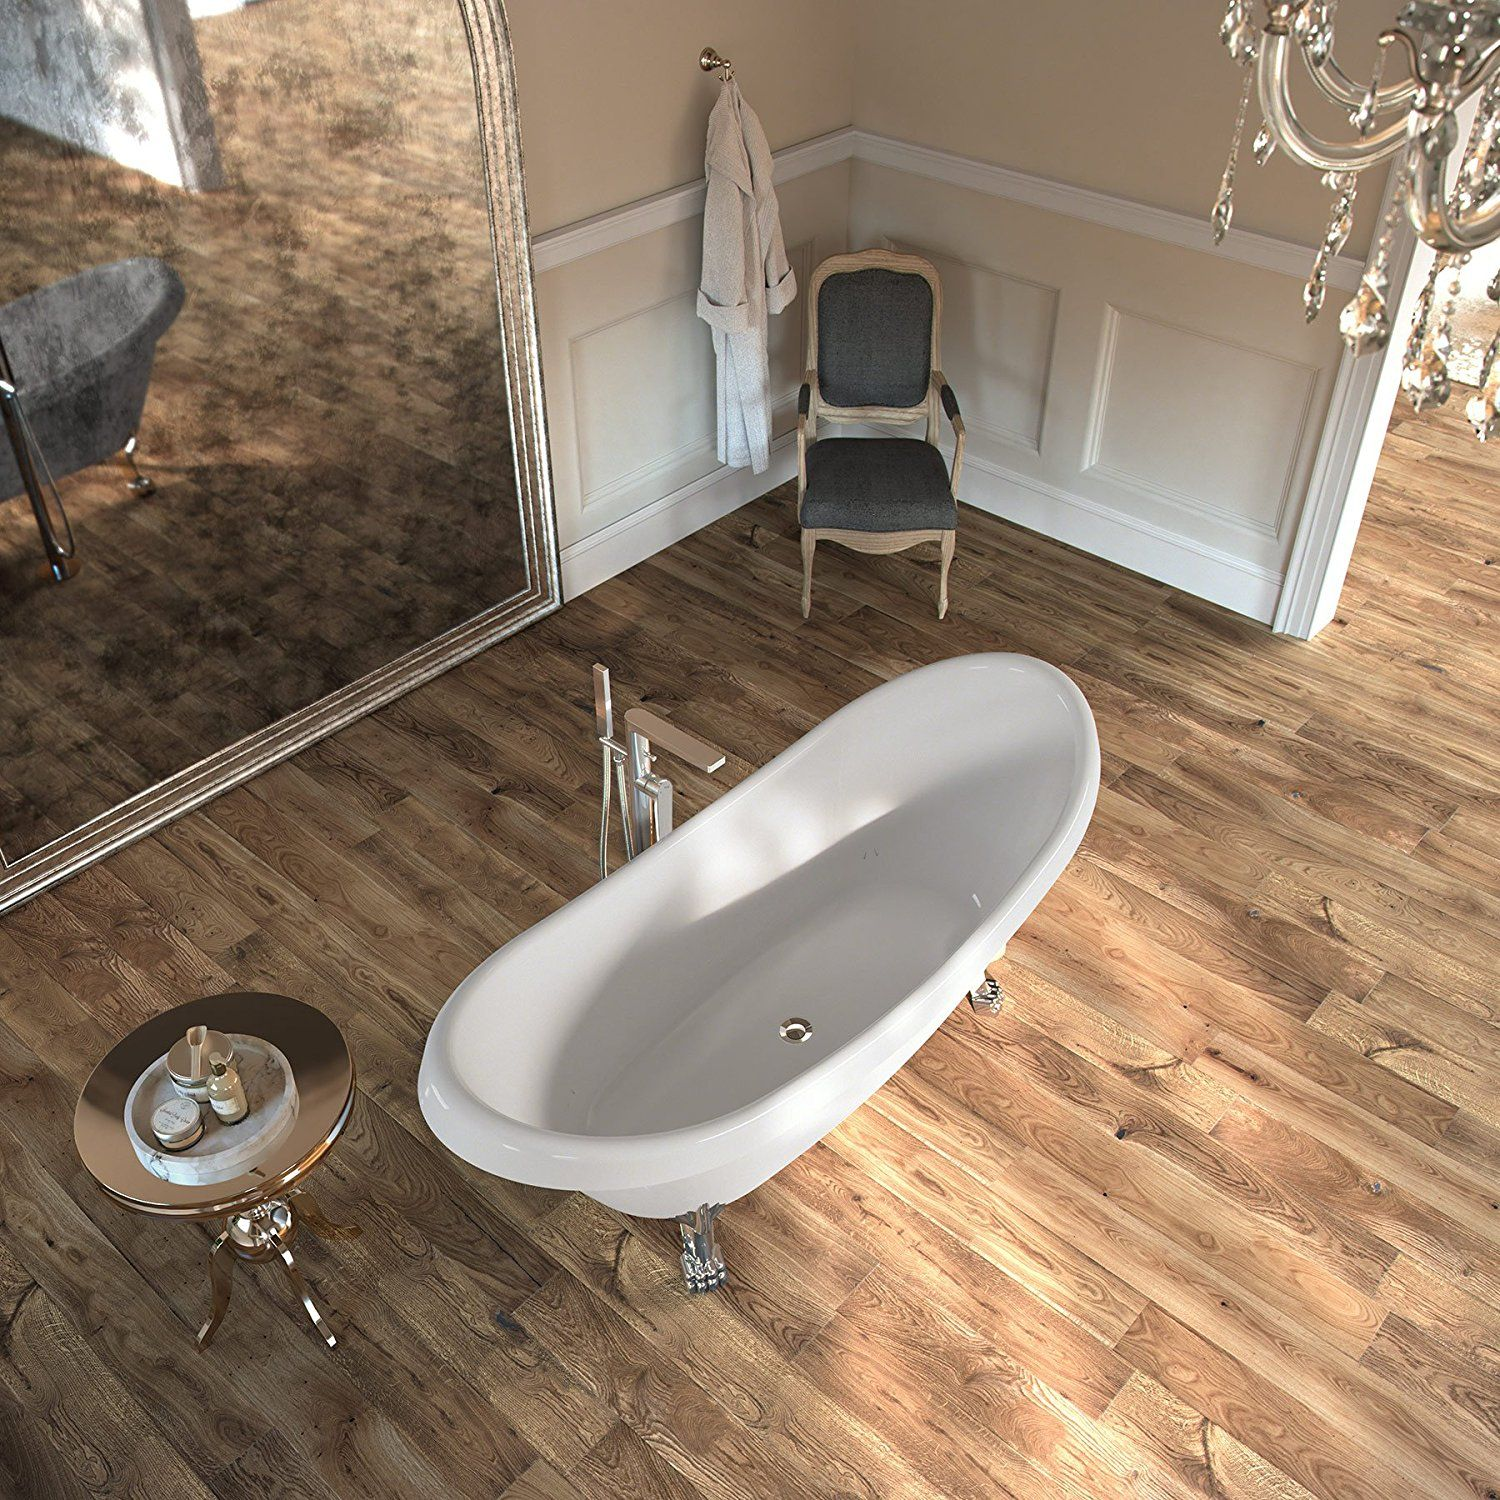 Can Laminate Flooring Be Installed In A Bathroom Answered Laminate Flooring Bathroom Vinyl Plank Flooring Laminate Flooring